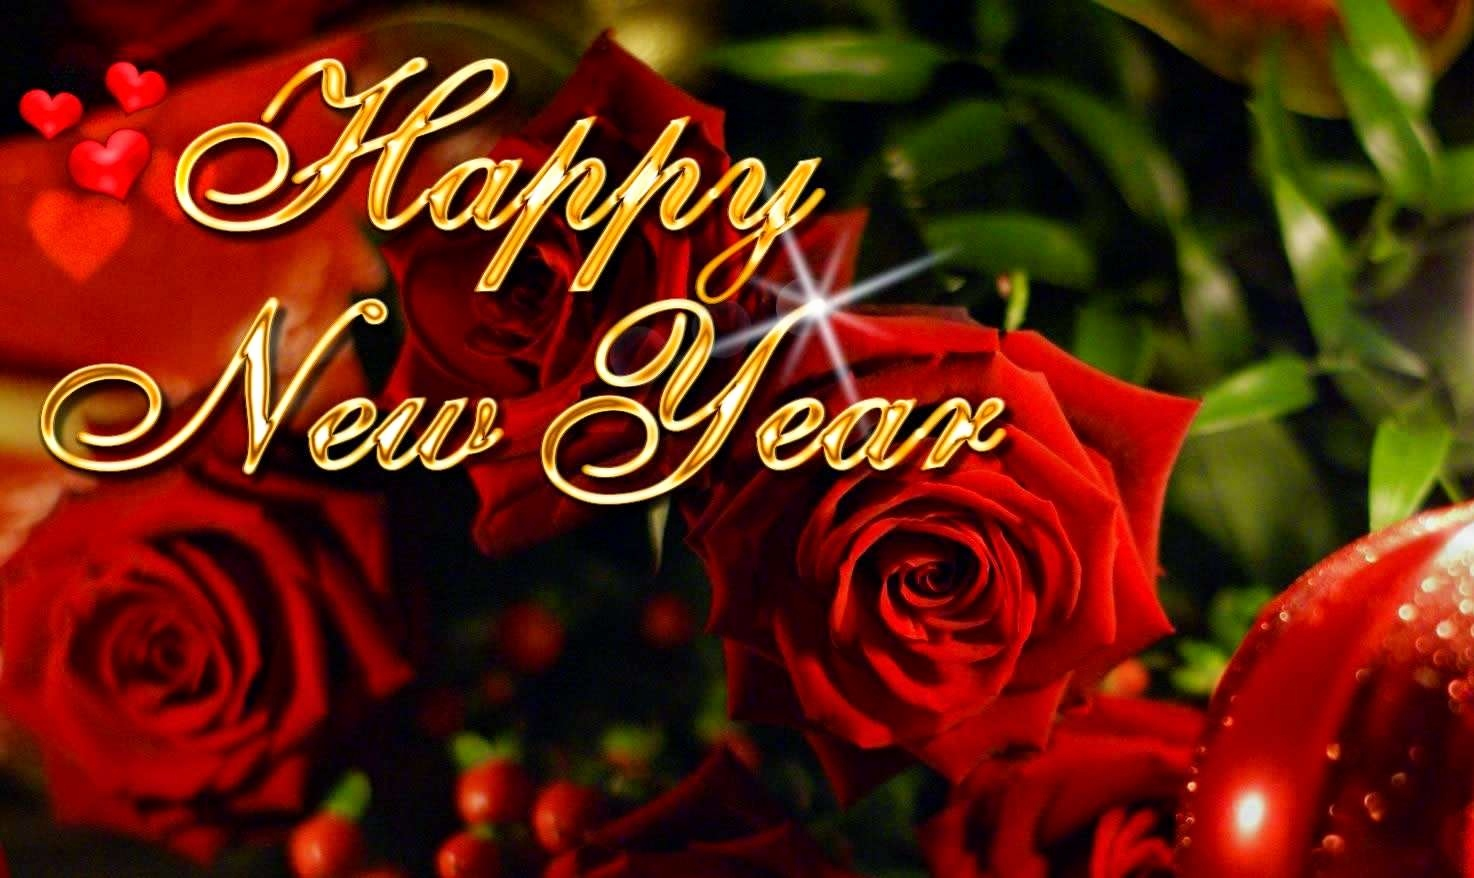 Funny New Year Wishes Quotes 2015 Fresh Happy New Year - Happy New Year 2019 Rose , HD Wallpaper & Backgrounds